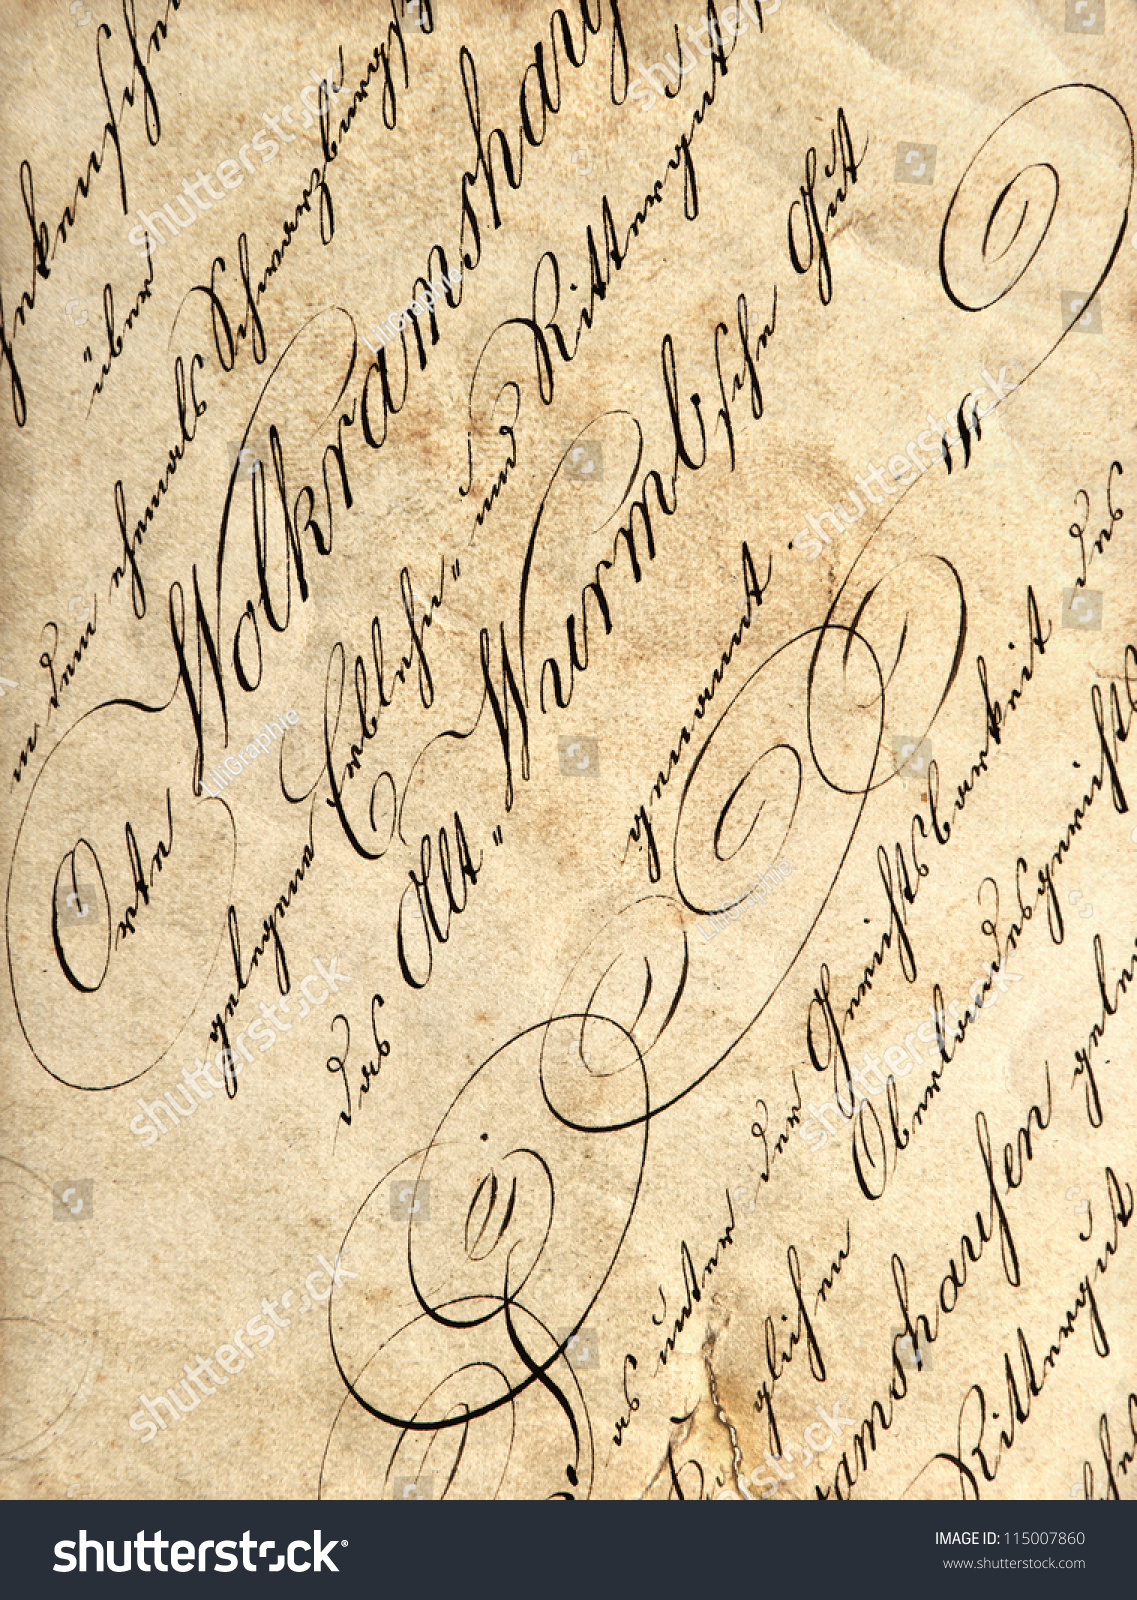 Vintage Calligraphy On Grunge Paper Background Stock Photo